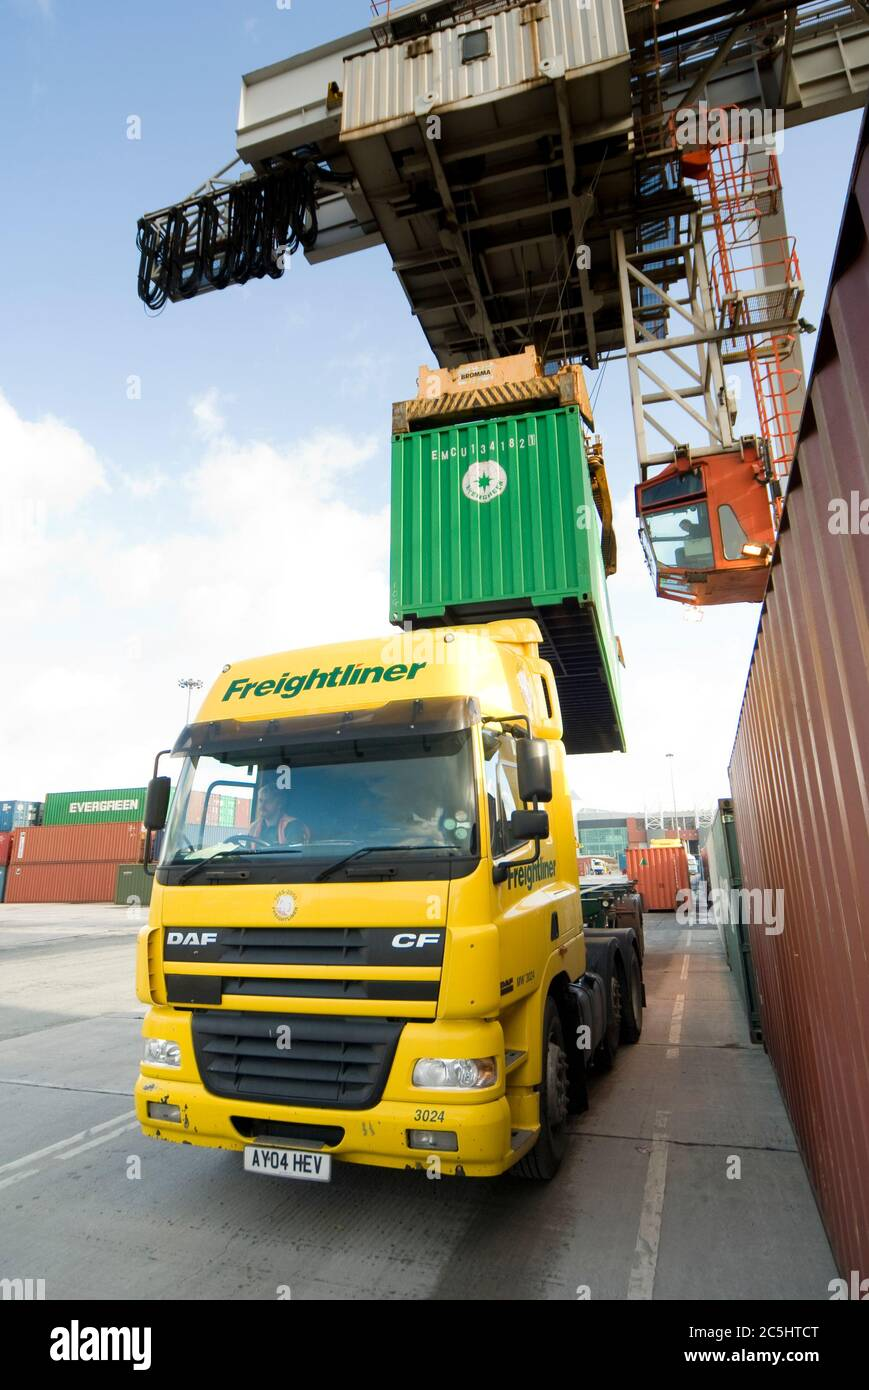 Rail mounted crane being used to load and unload shipping containers on HGV lorries at Manchester Euroterminal, Trafford Park, Manchester, England. Stock Photo